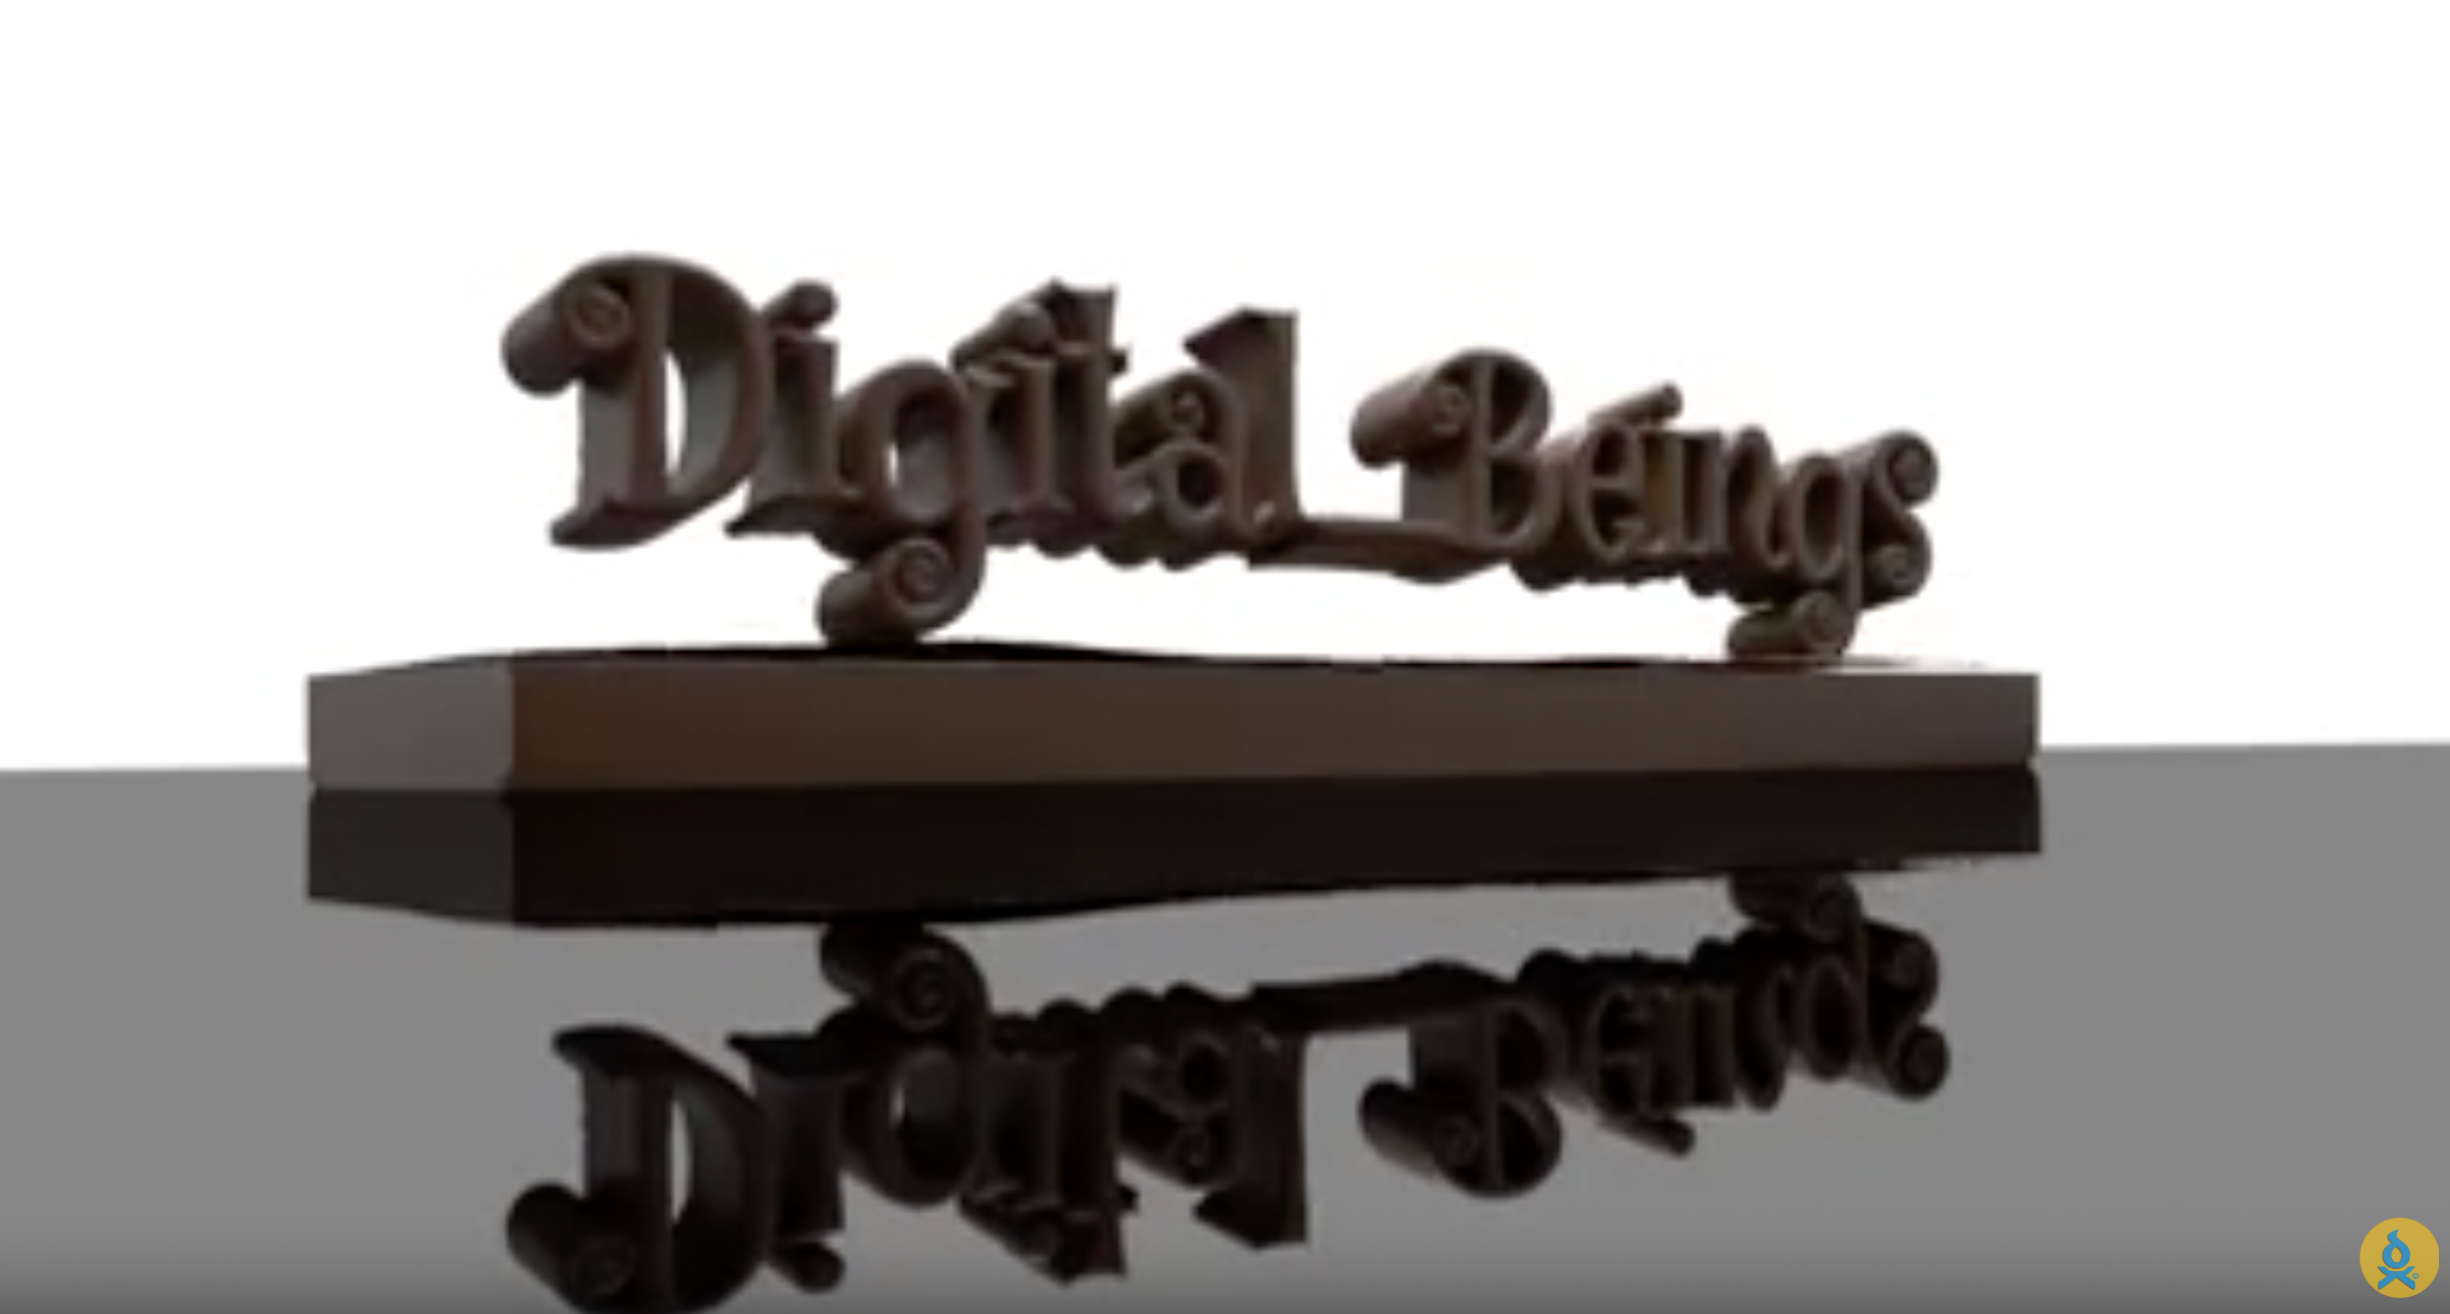 Digital Beings Logo Animation image